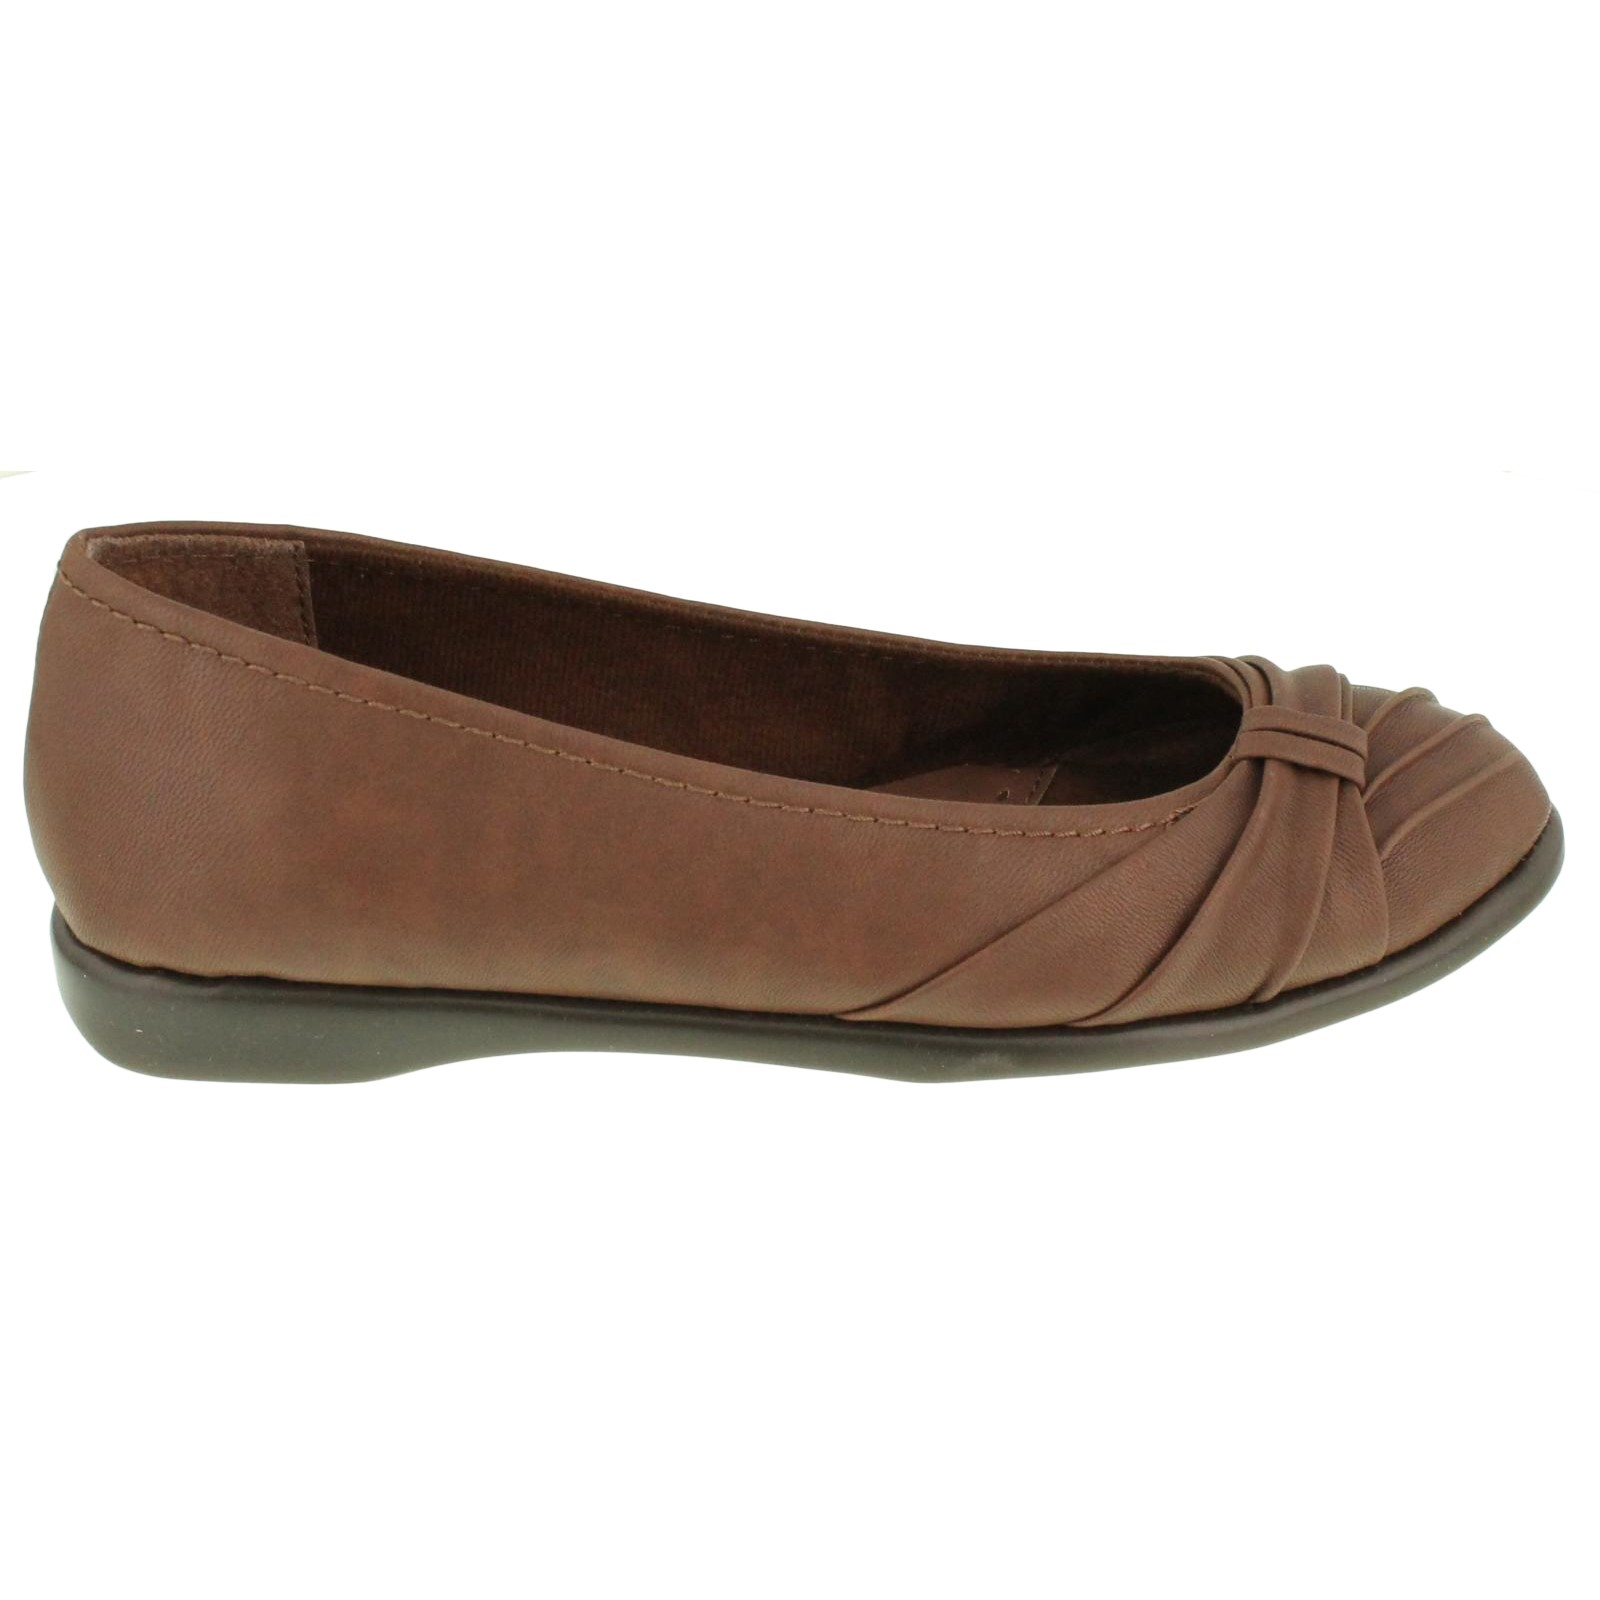 Women's Easy Street, Giddy slip on Flats